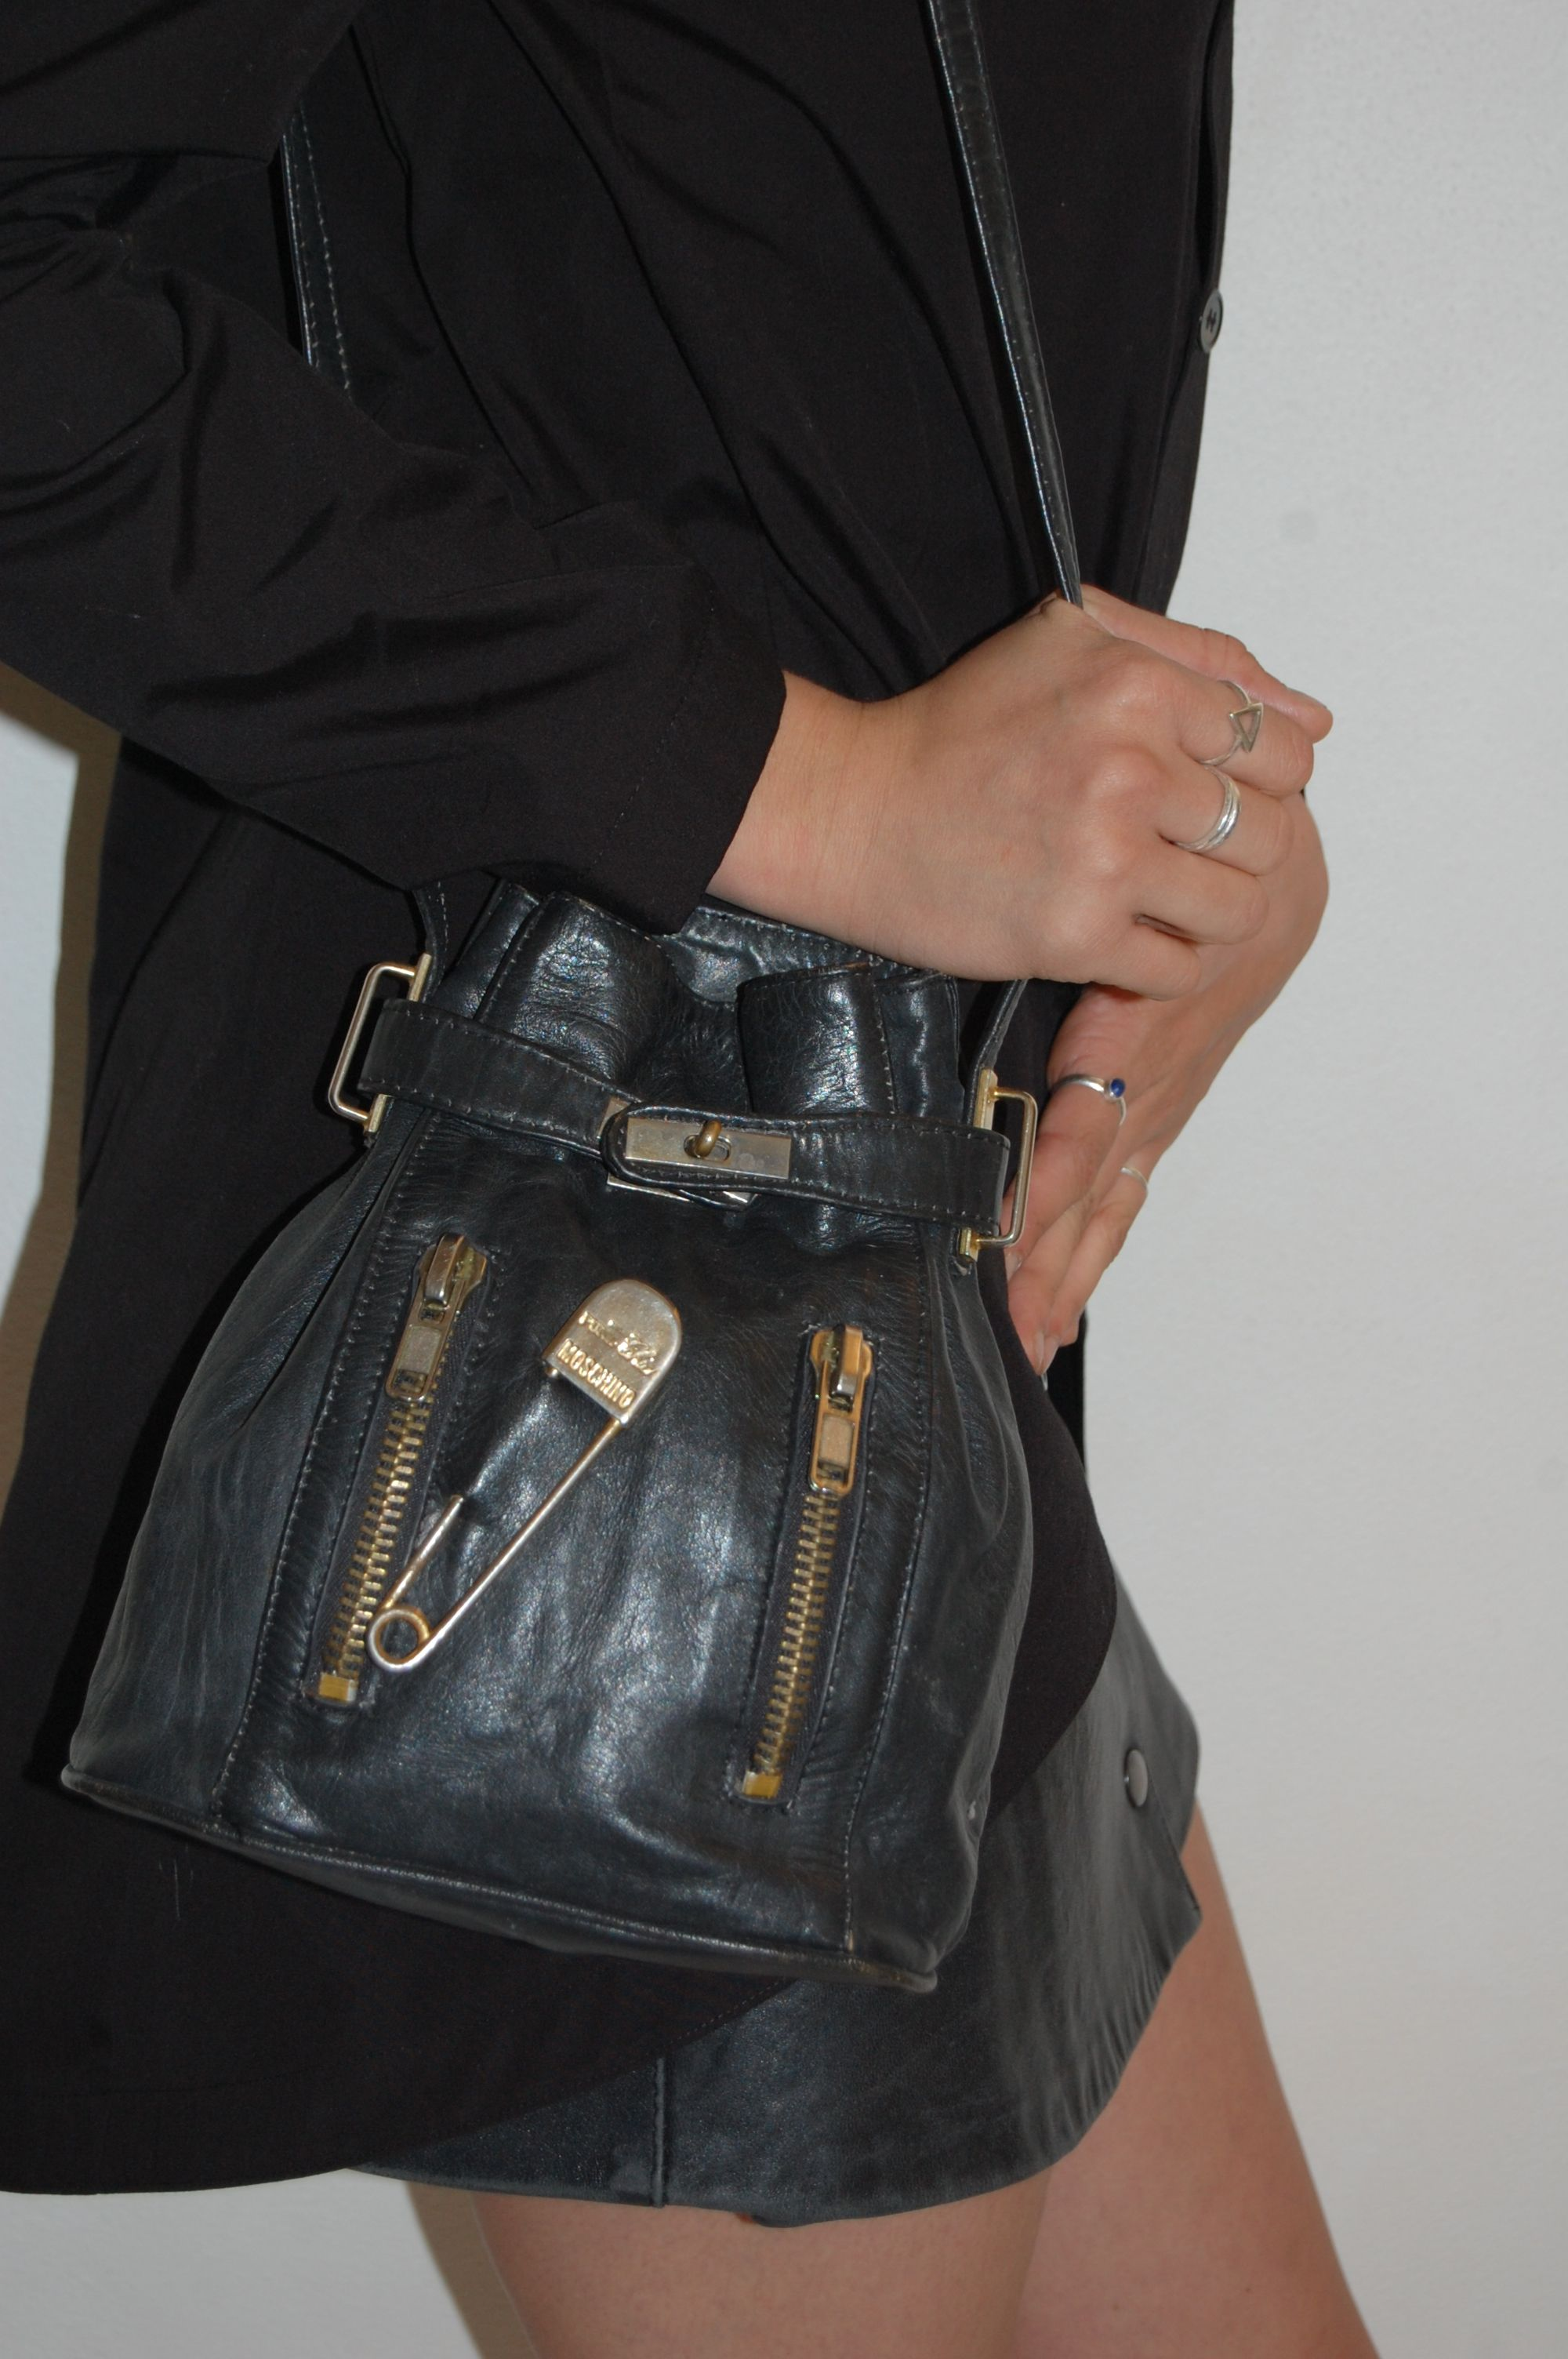 Moschino Safety Pin Vintage Pouch Shoulder Bag. Available